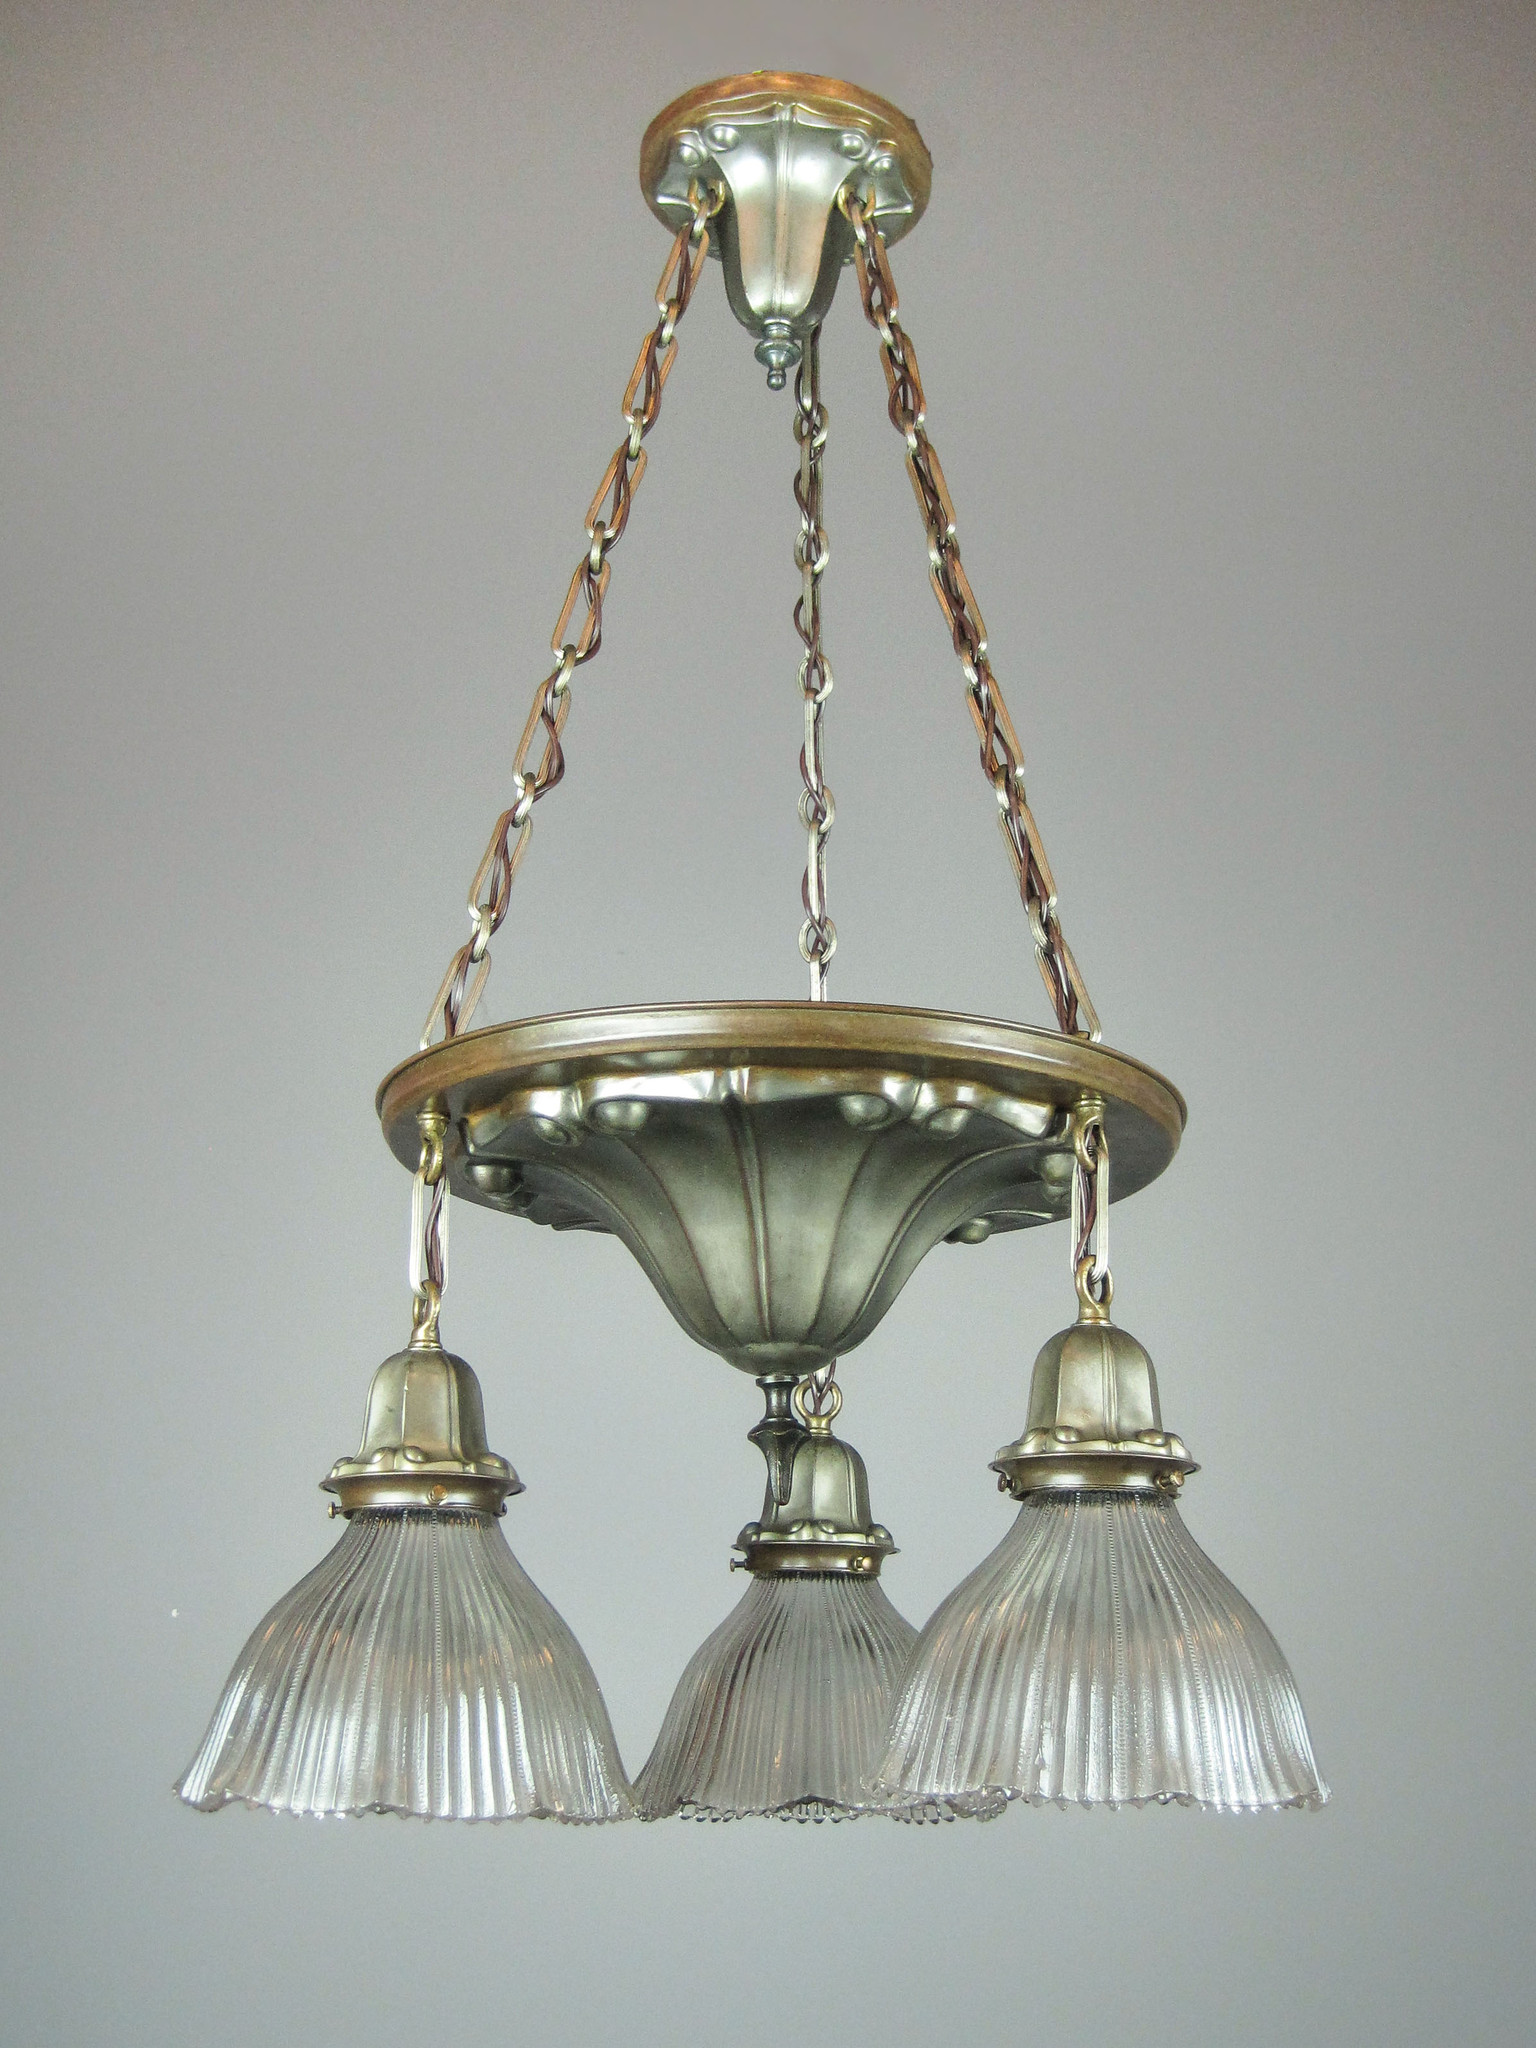 Art Nouveau Shower Light Fixture 3 Light